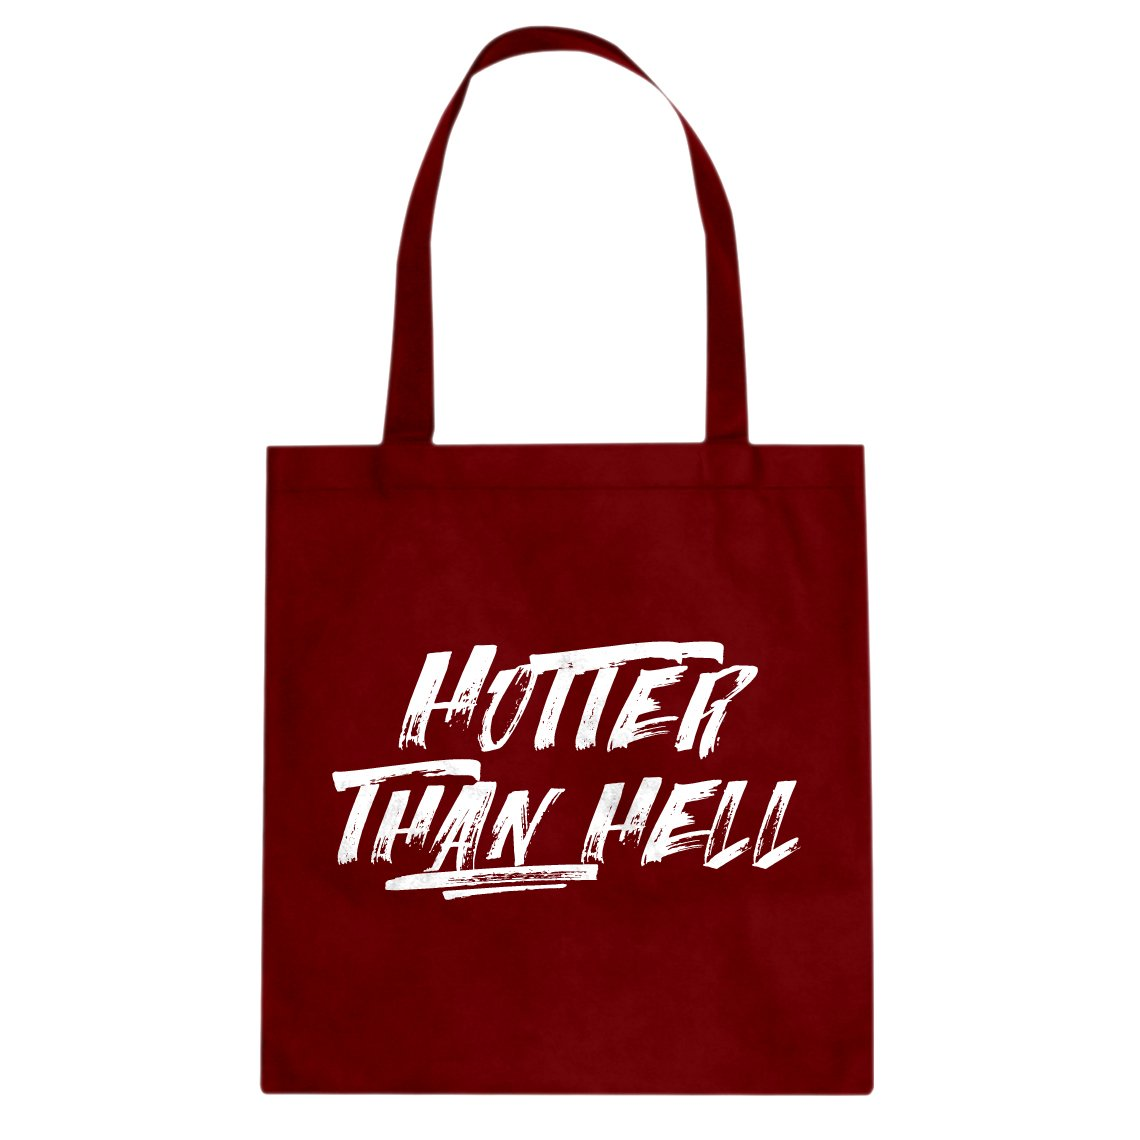 Indica Plateau Hotter than Hell Cotton Canvas Tote Bag